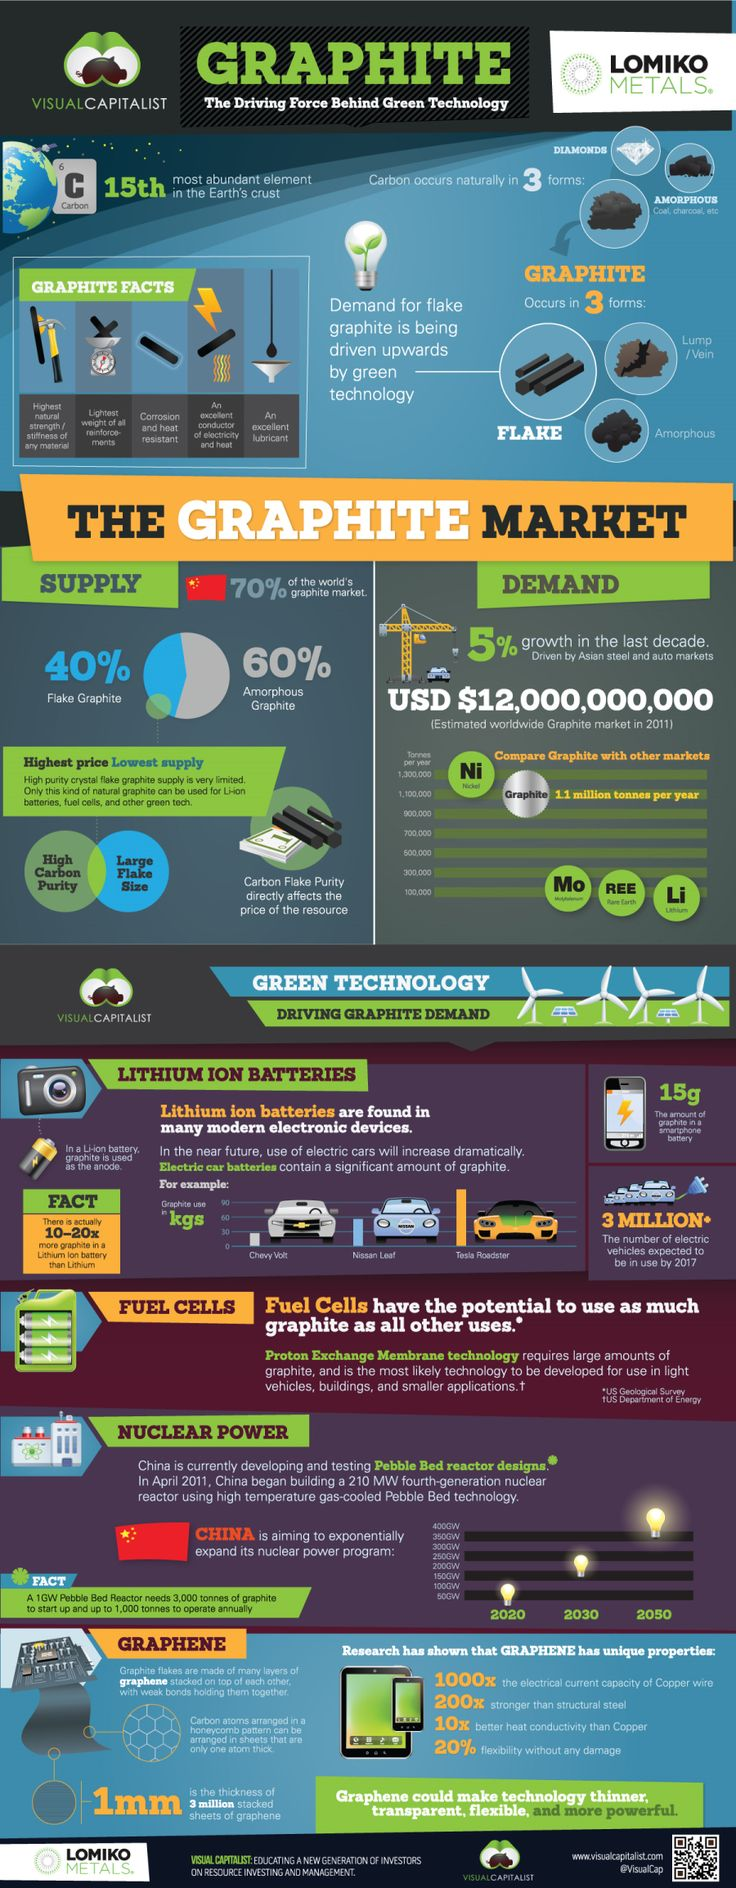 The #key ingredient behind green #technology